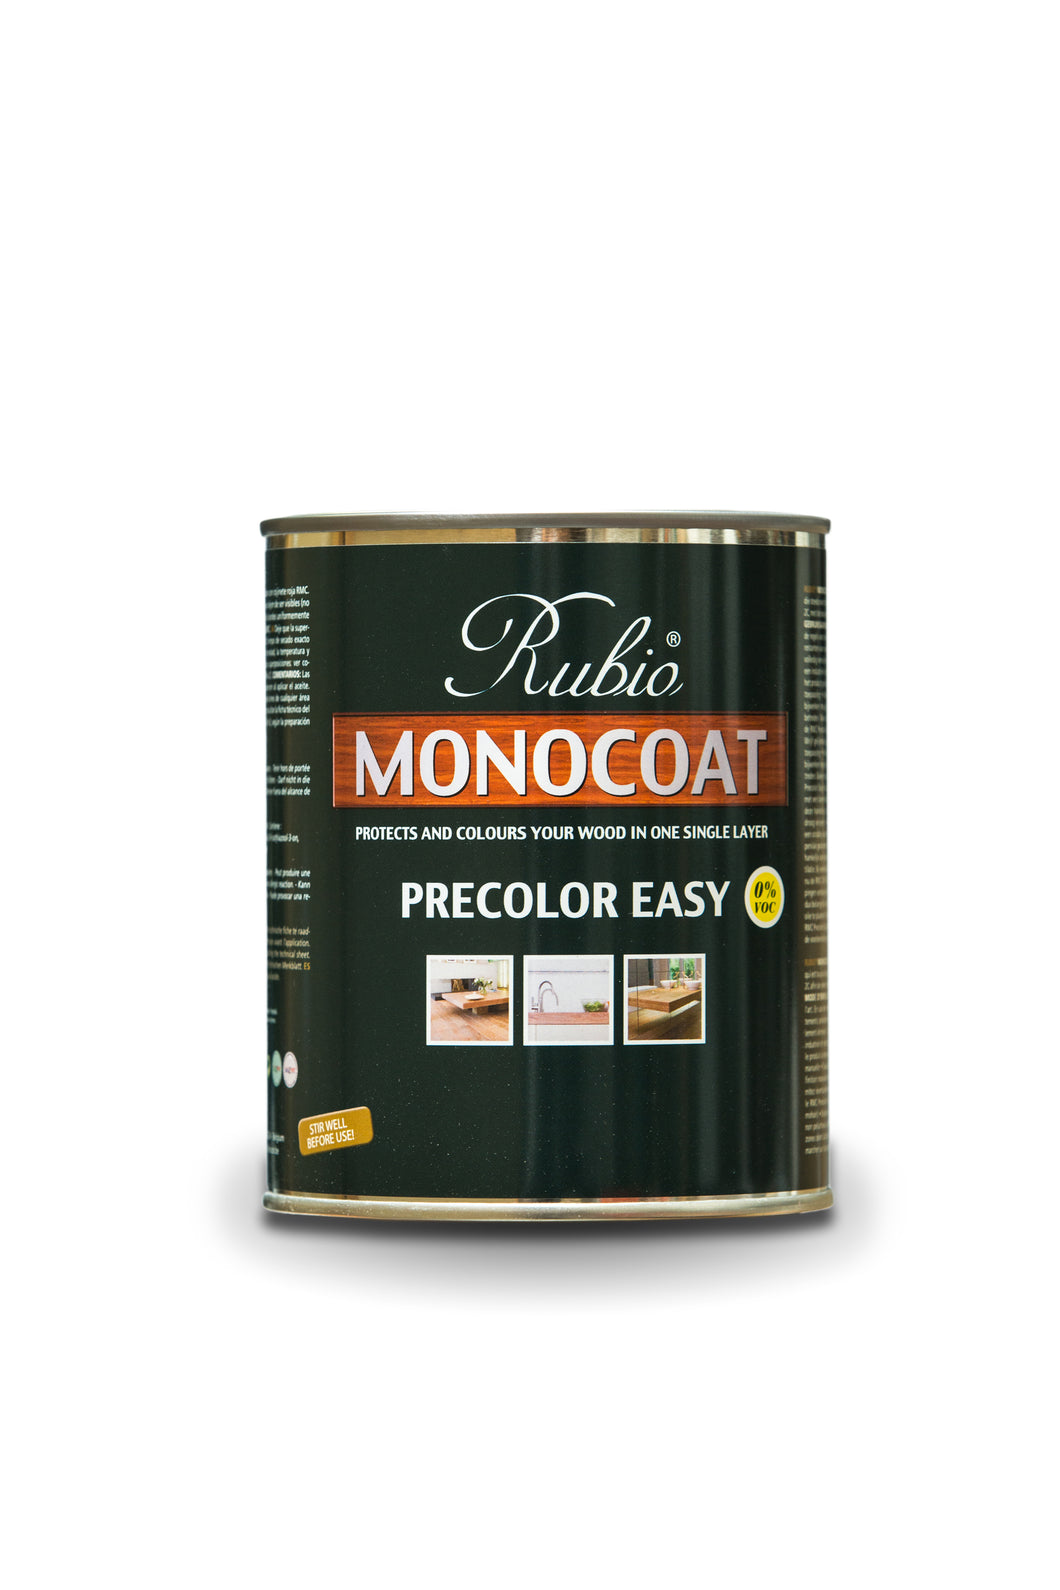 Rubio Monocoat Wood Stain Pre-Color Easy Mint White